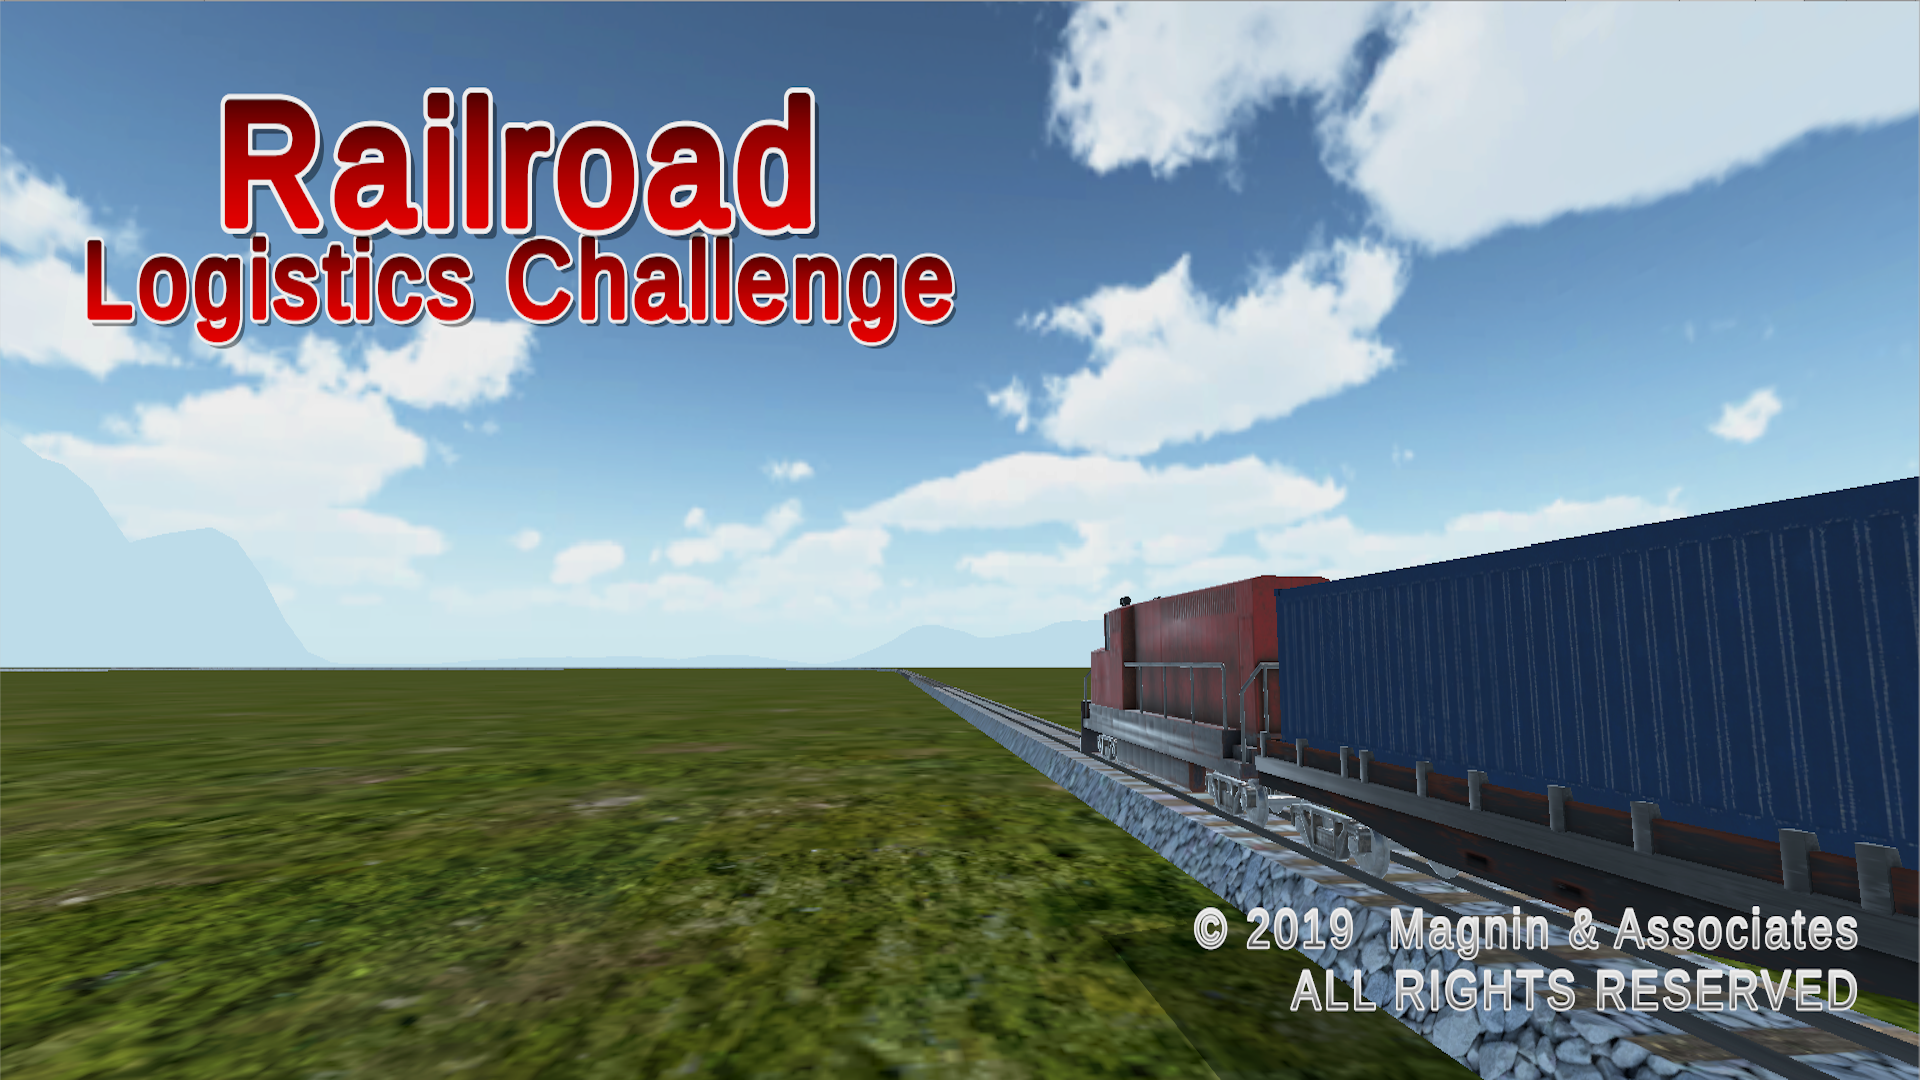 Railroad Logistics Challenge for iOS, Android, AppleTV, Windows PC, Xbox Image